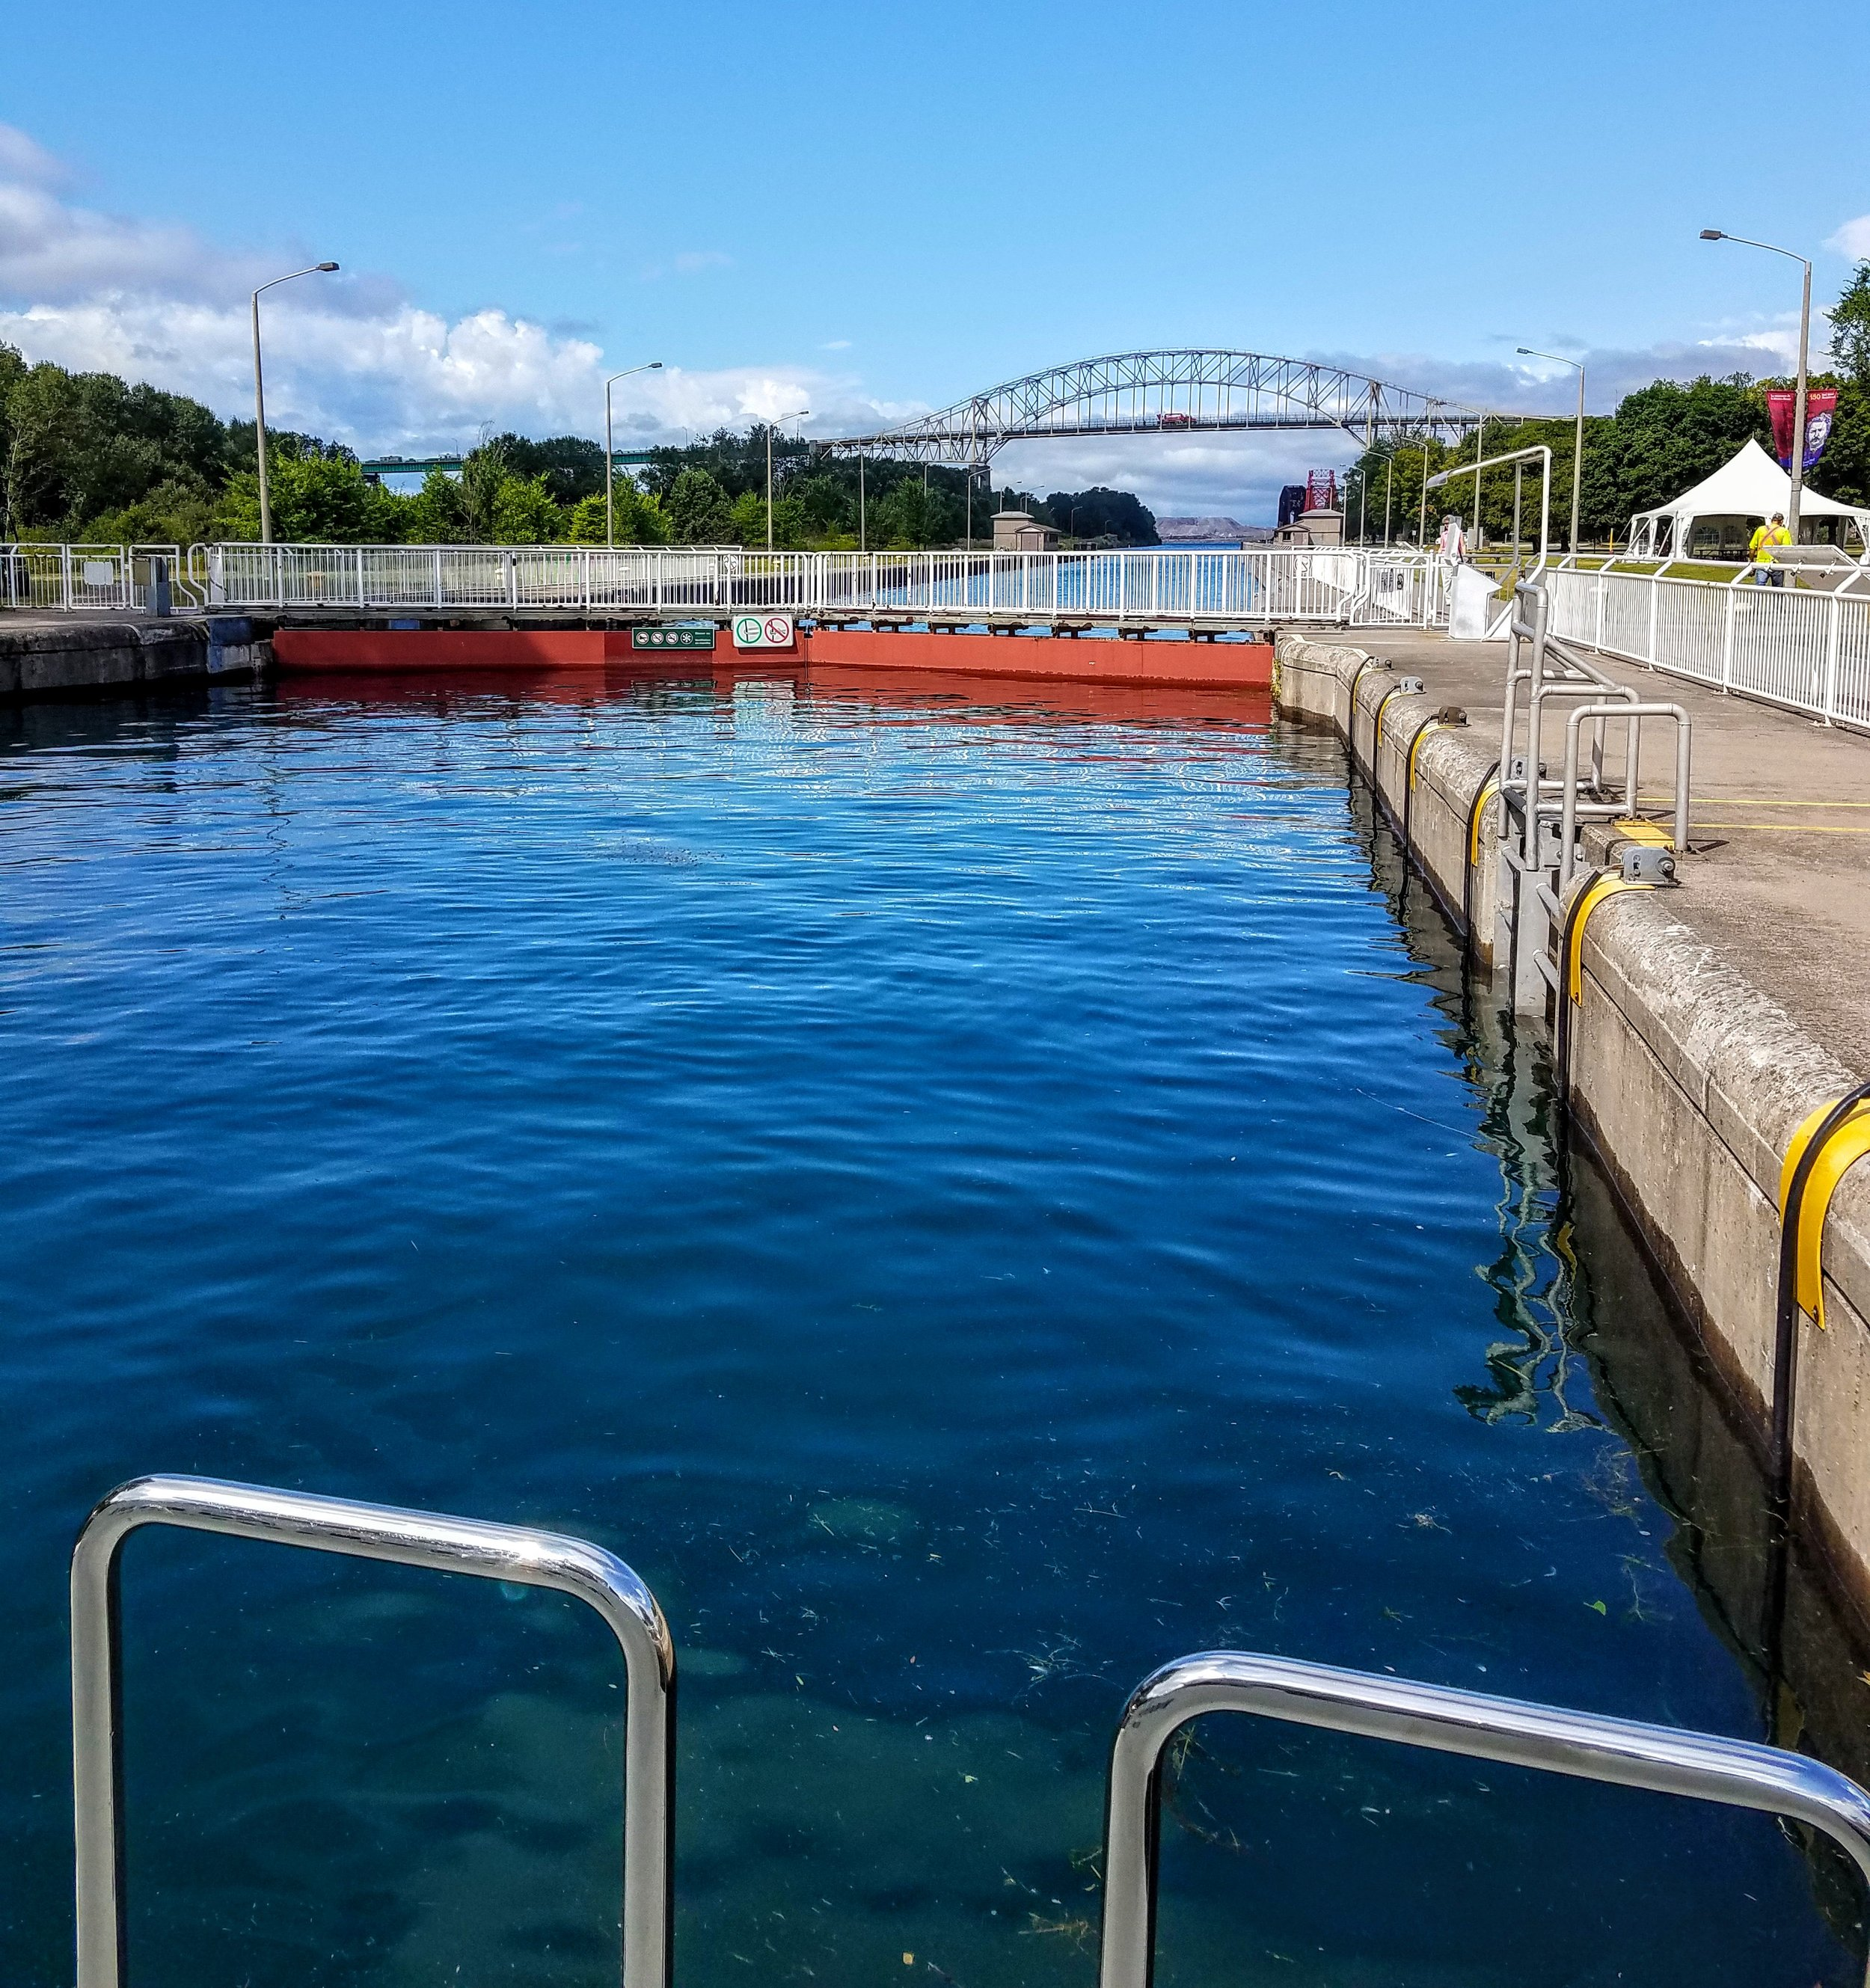 The gates shut as we 'down lock' on return from Lake Superior